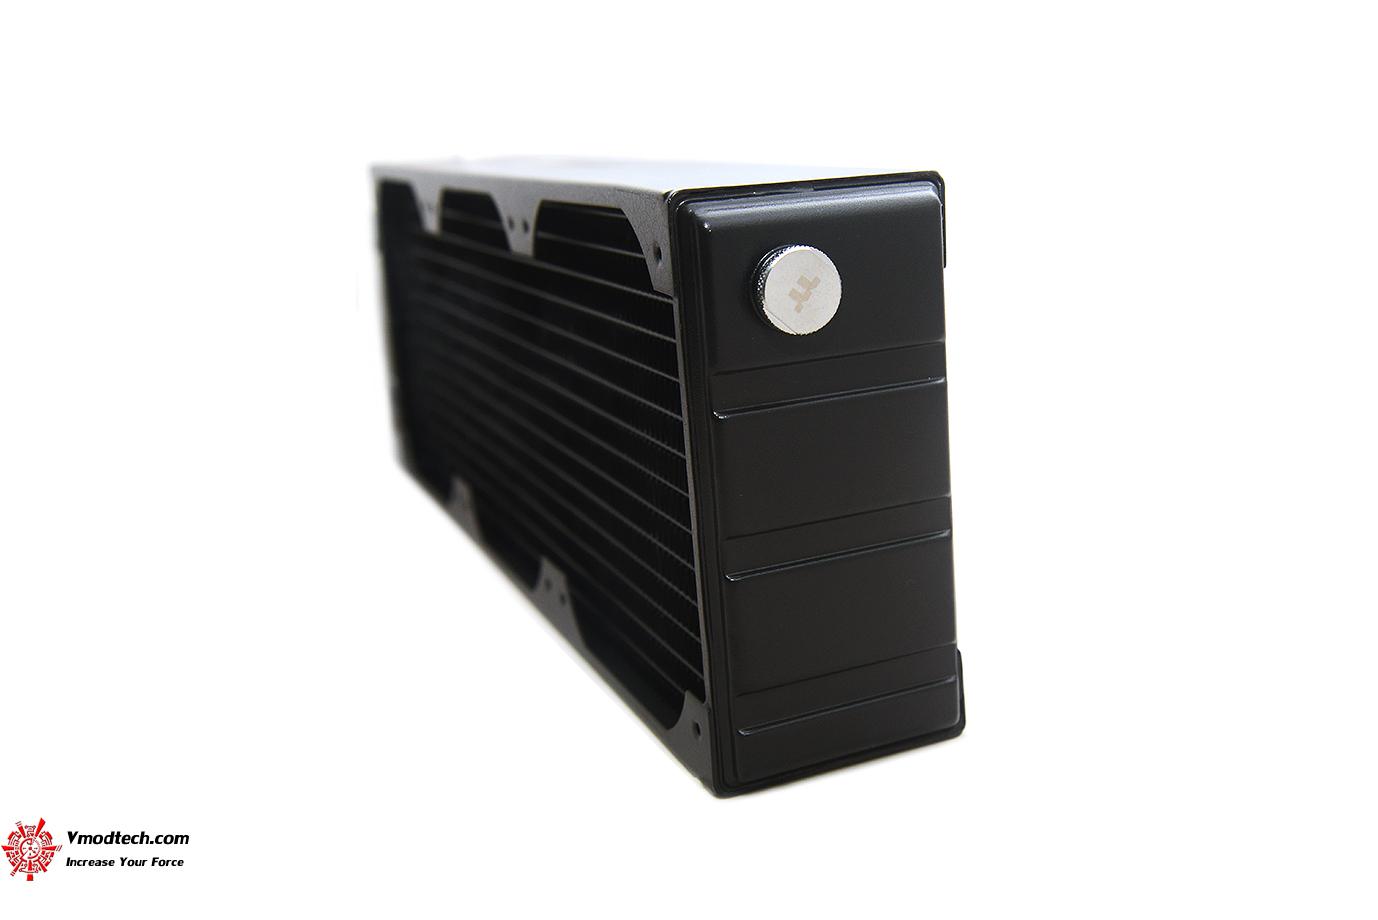 dsc 7686 Thermaltake Pacific CL360 Radiator Review